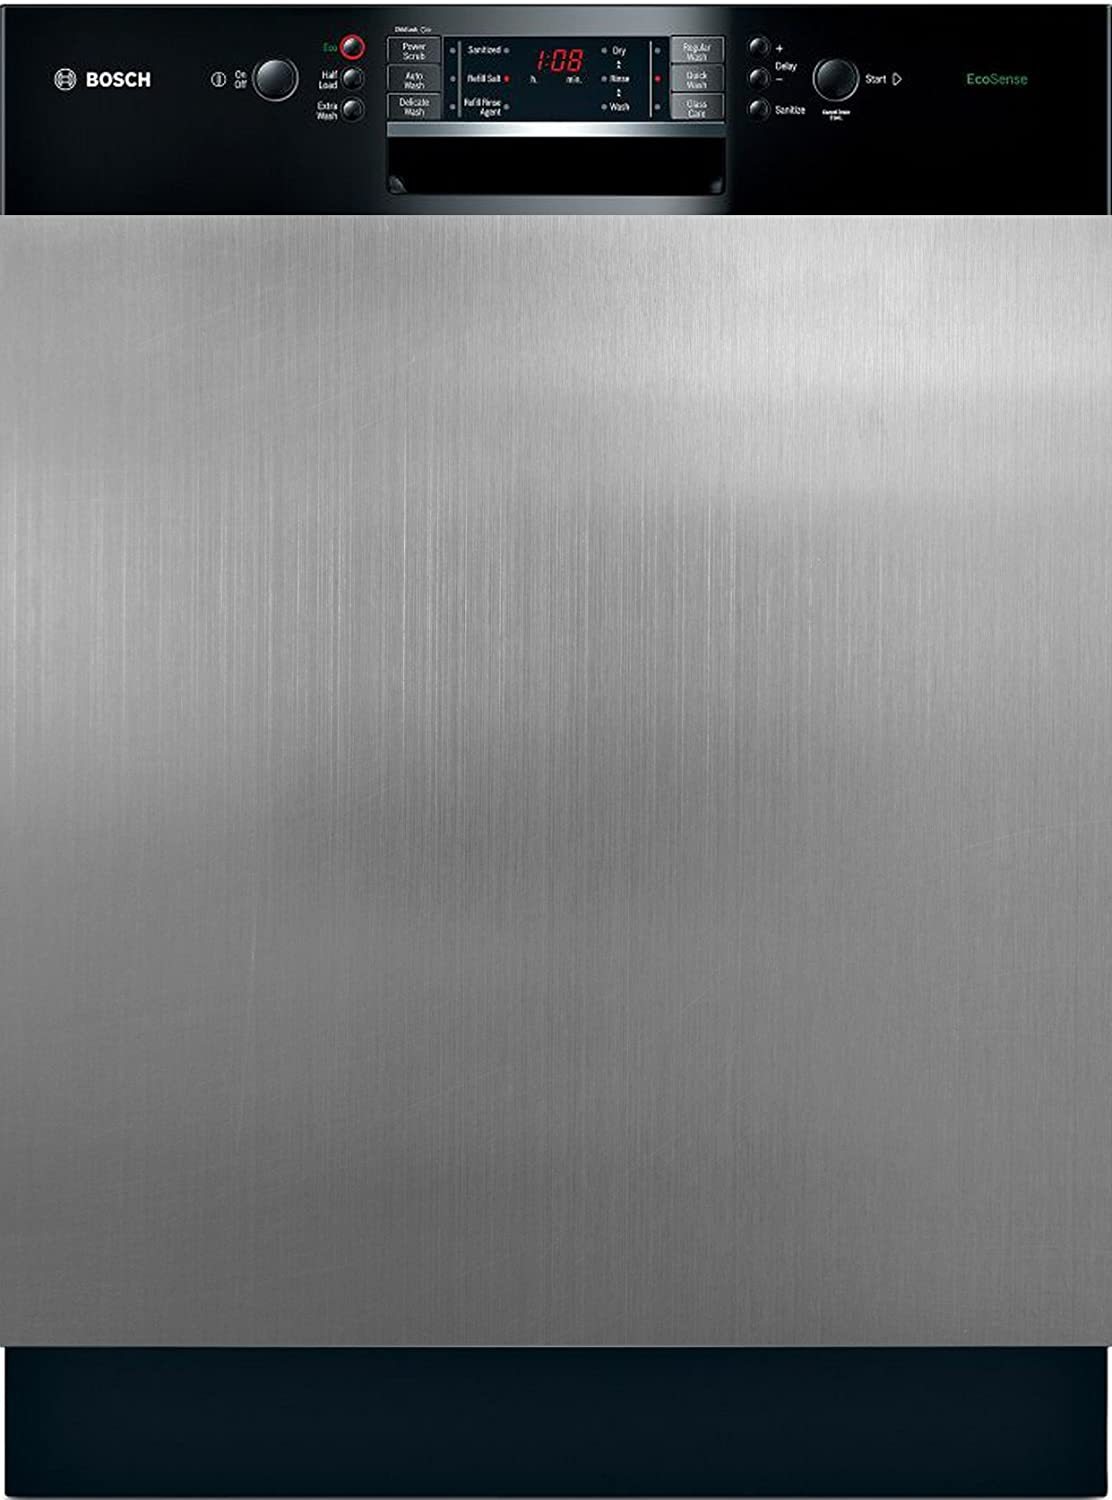 Appliance Art Instant Stainless Magnetic Dishwasher Door Cover Sheet, Vinyl Decorative Panel Decal With Stainless Steel Texture For An Instant, Easy Update (23.5 x 26 Inches, Easily Trimmable)